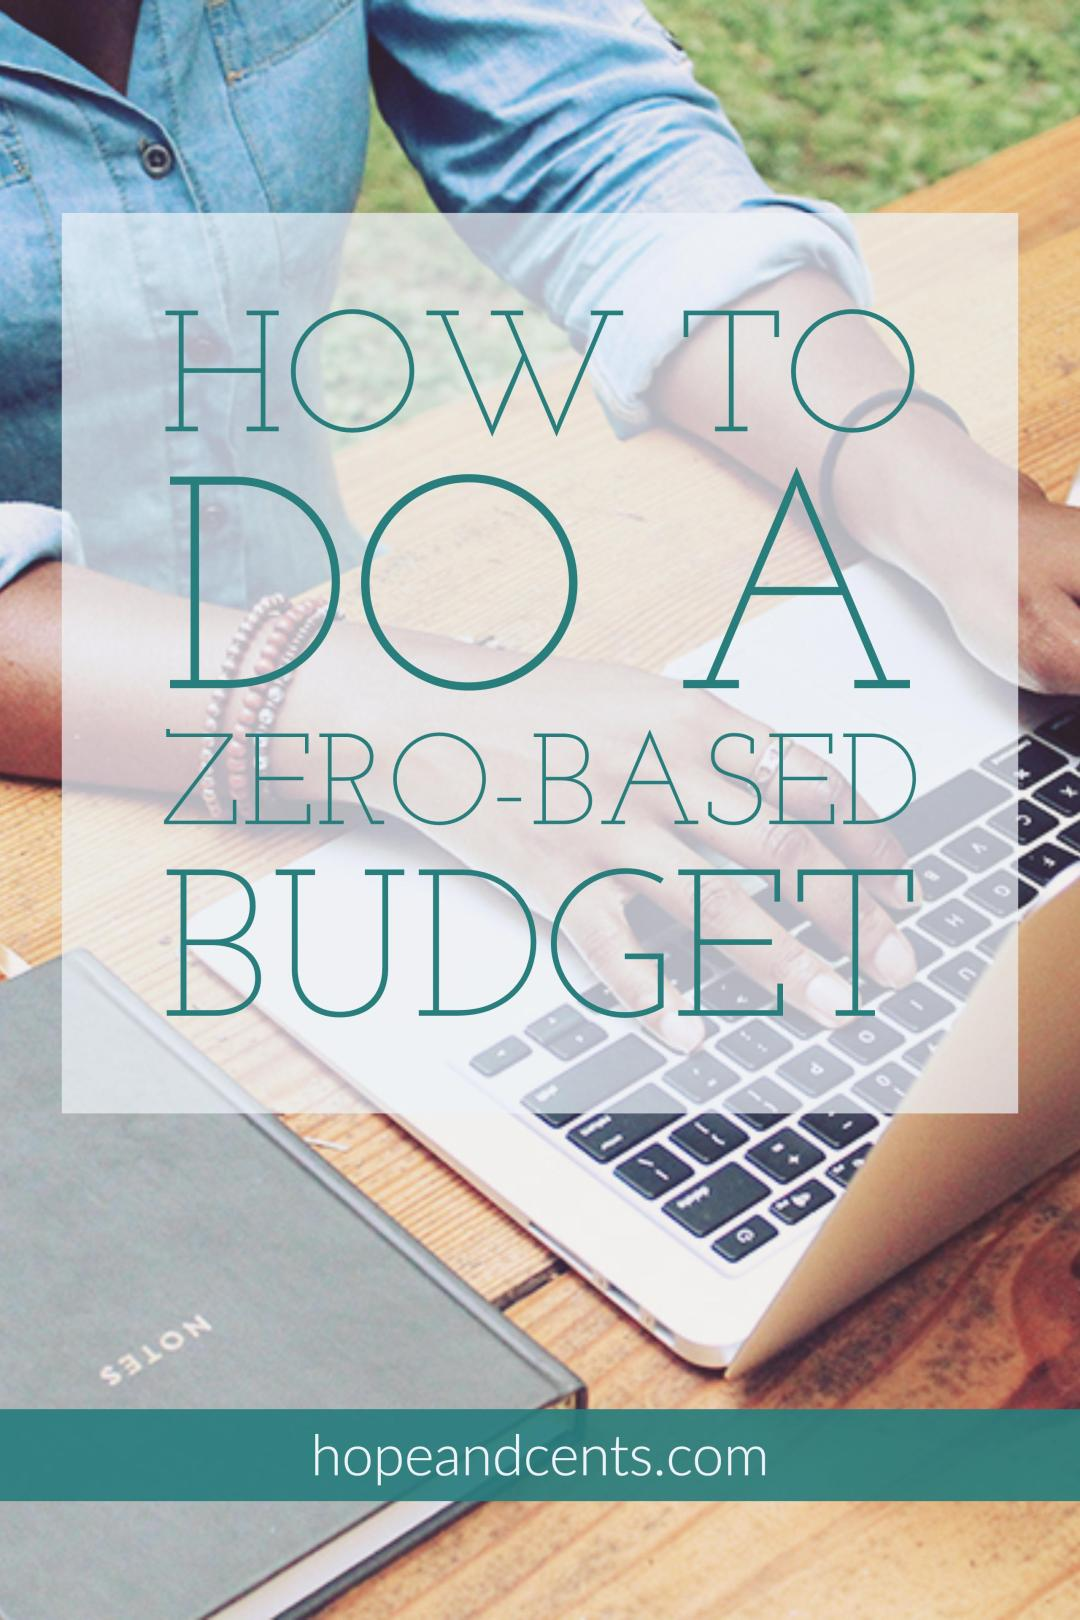 Have you tried a zero-based budget? This budgeting method actually works. Try it if you're looking to manage your money and be debt-free.